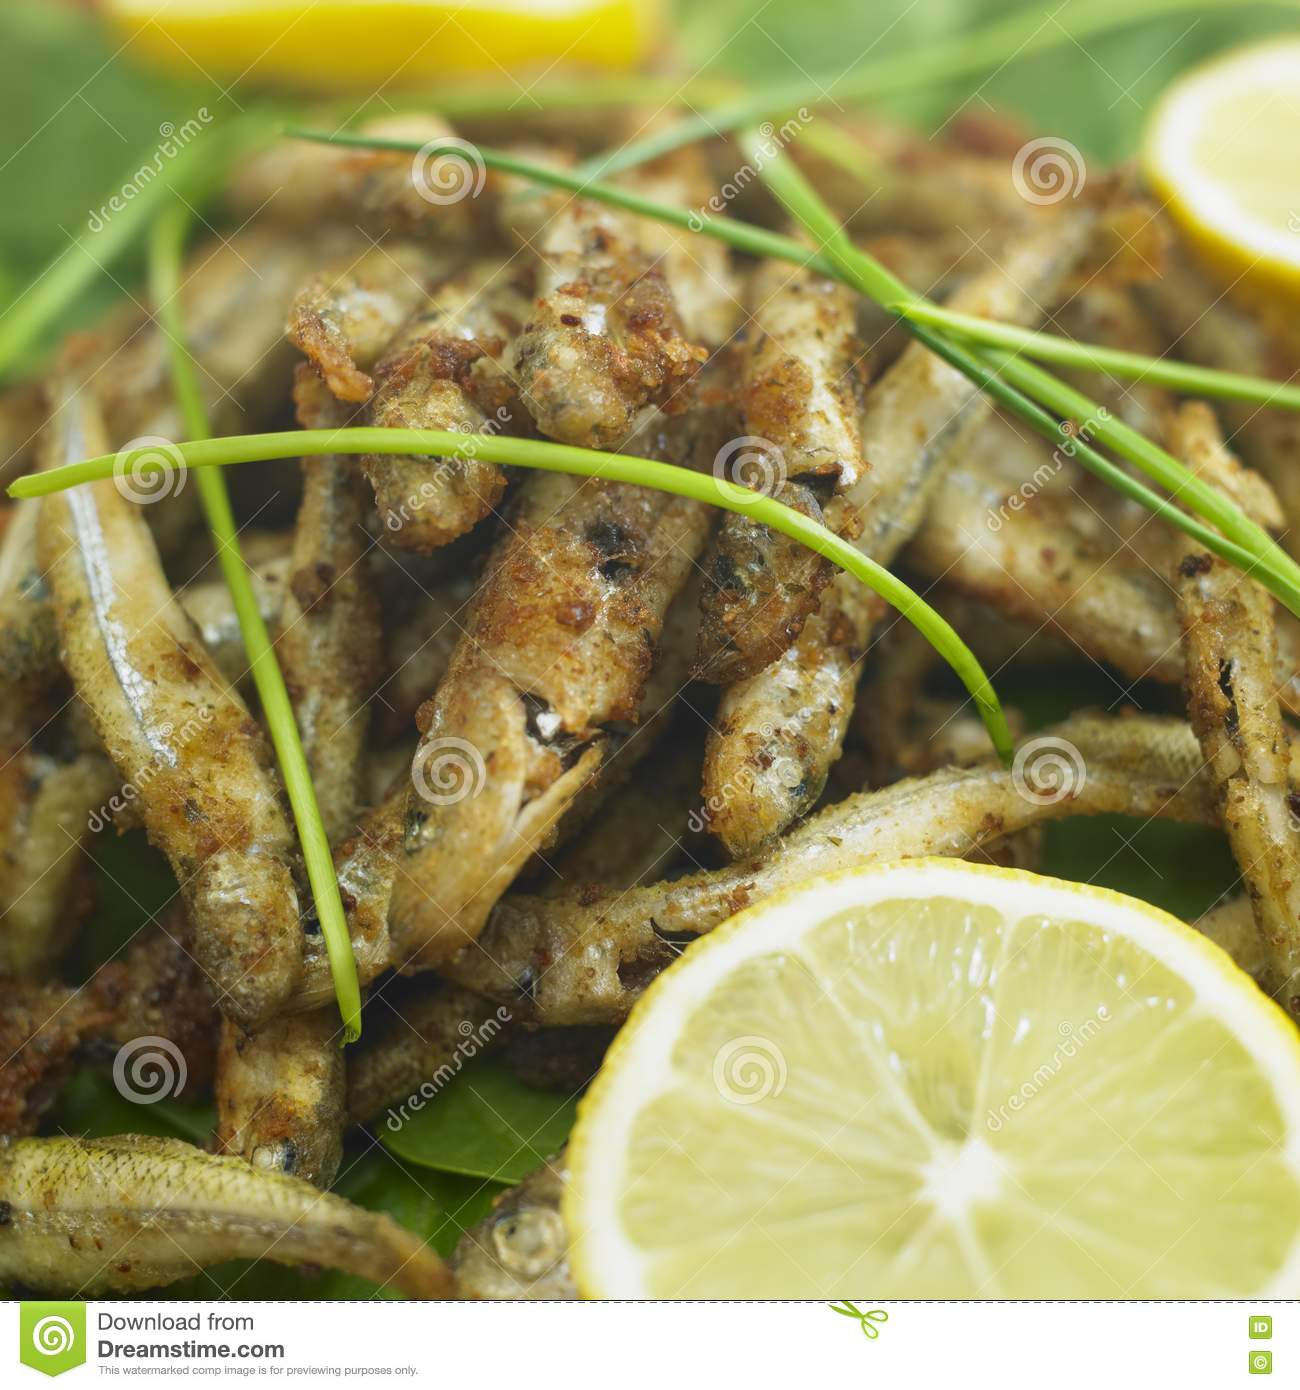 Fried Anchovies Royalty Free Stock Photos - Image: 17236588